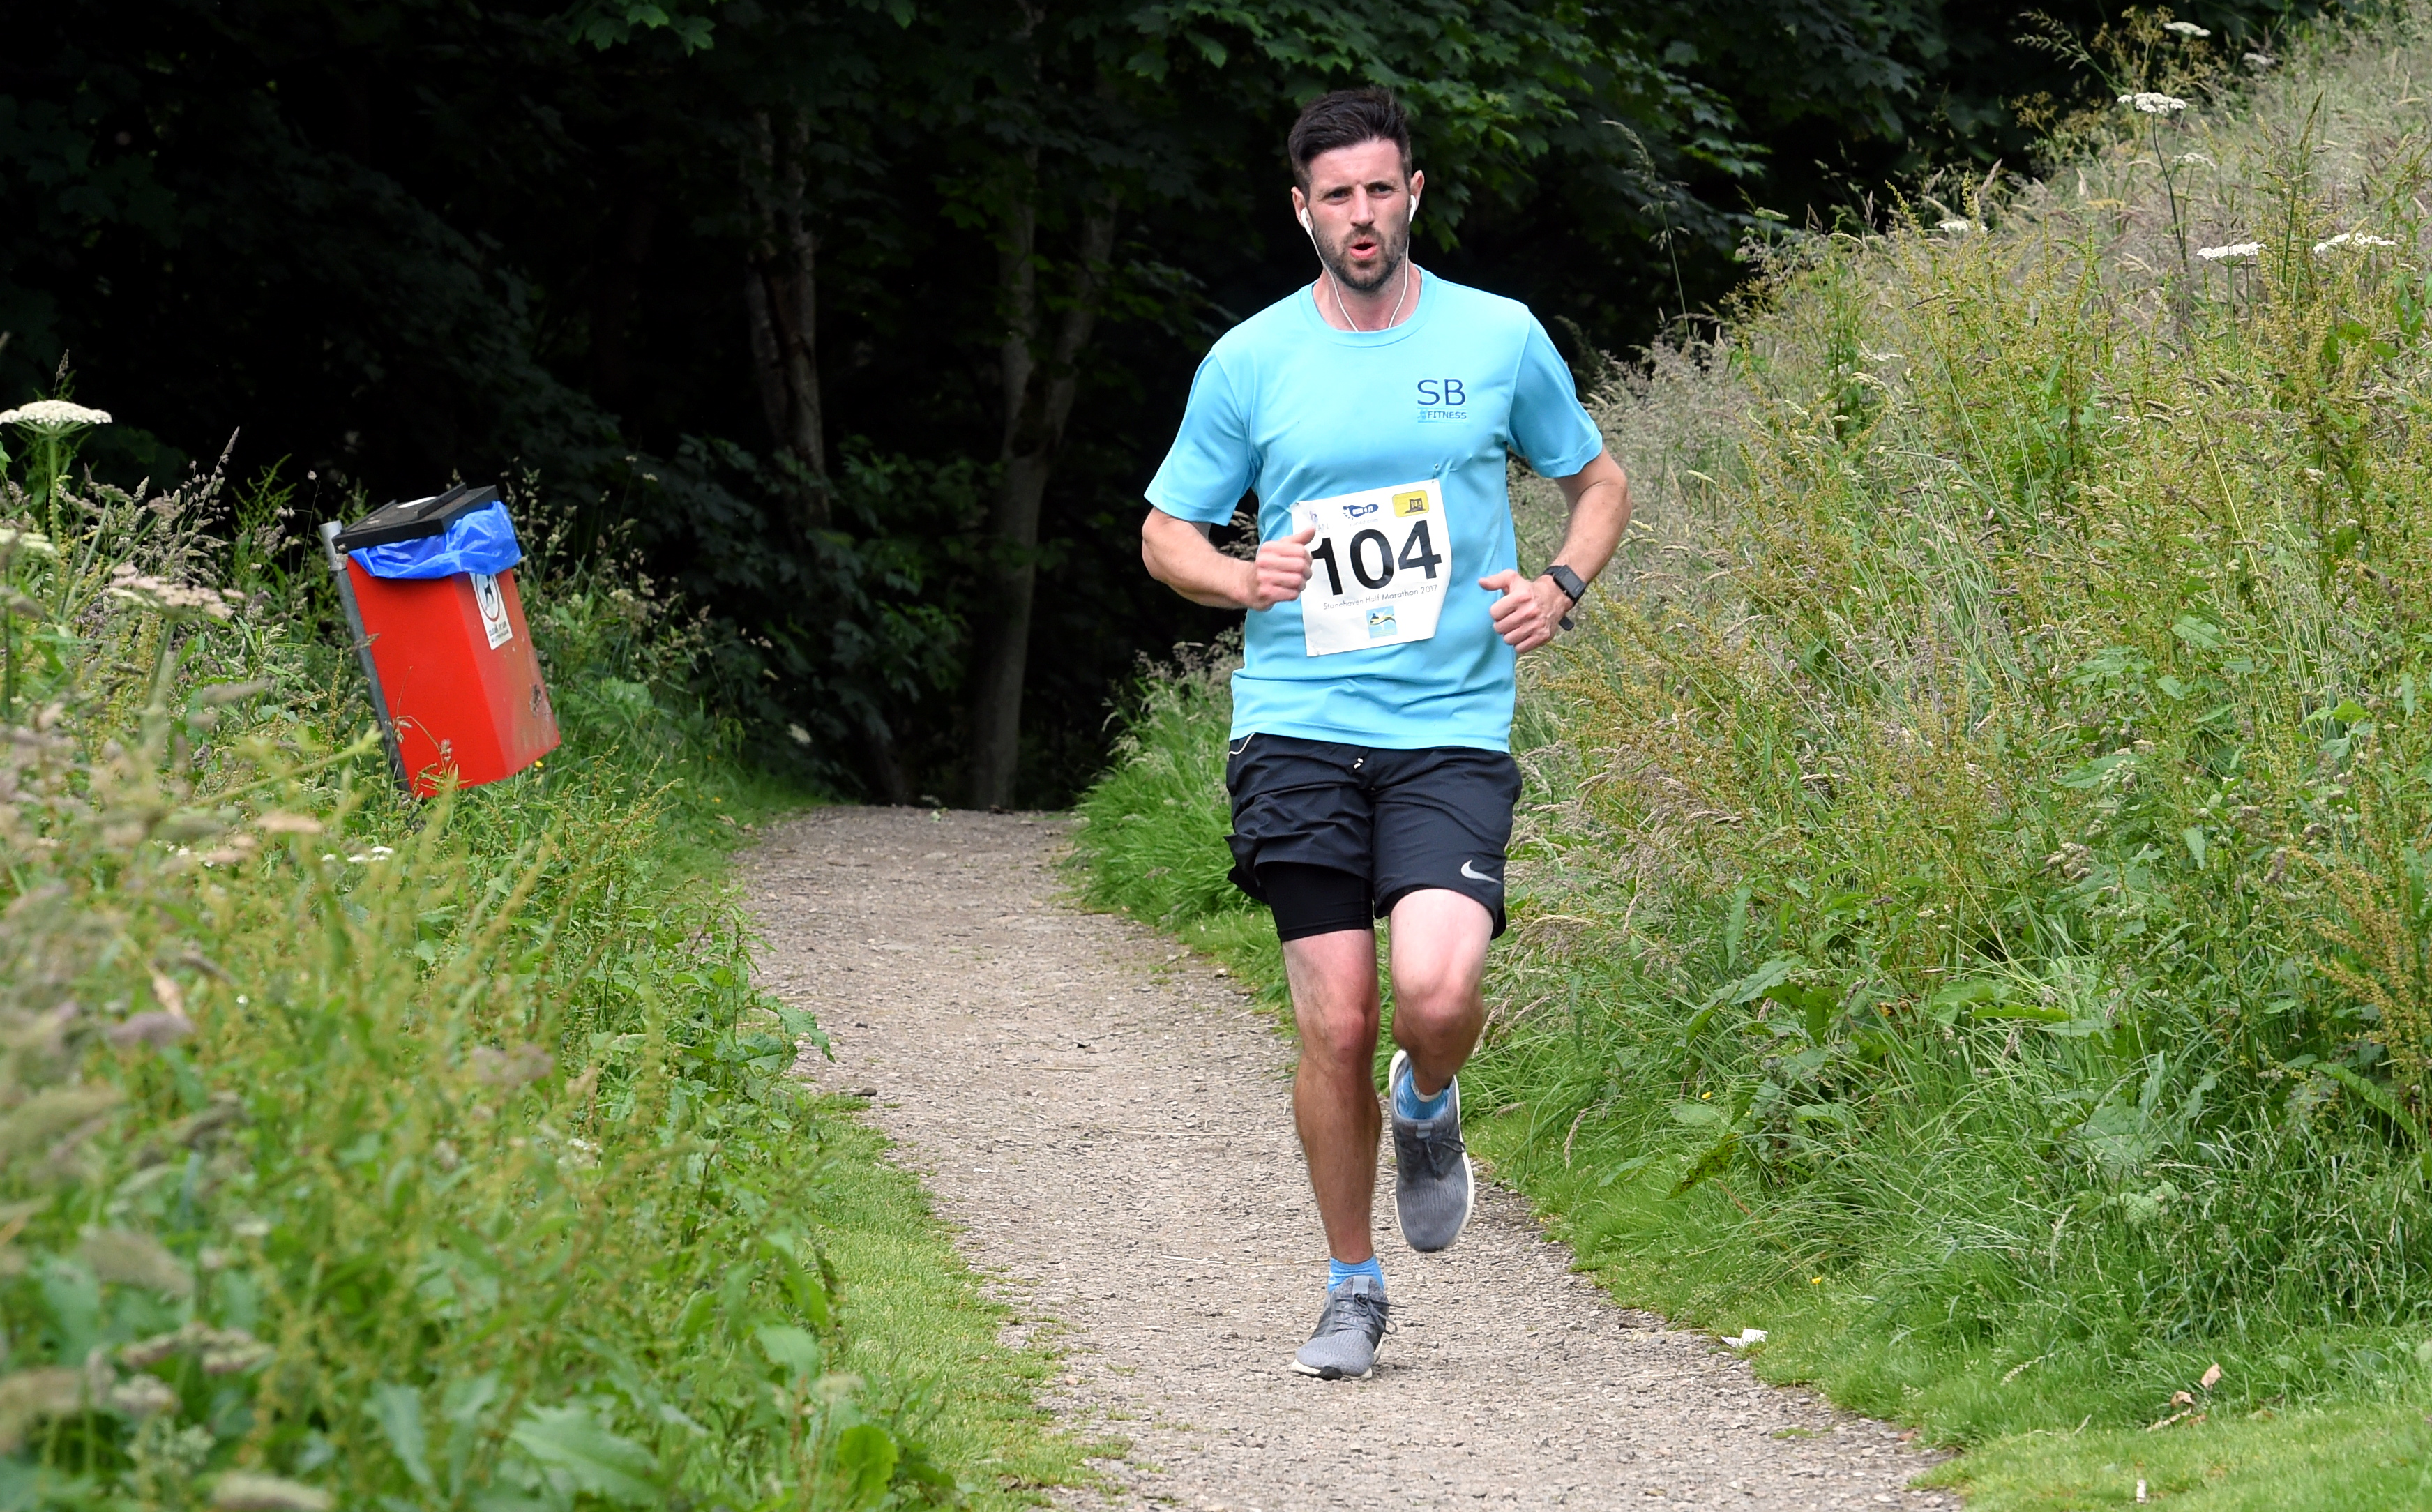 The new Run Banchory event has been organised by Scott Birse, who owns SB Fitness, and is also a keen runner.